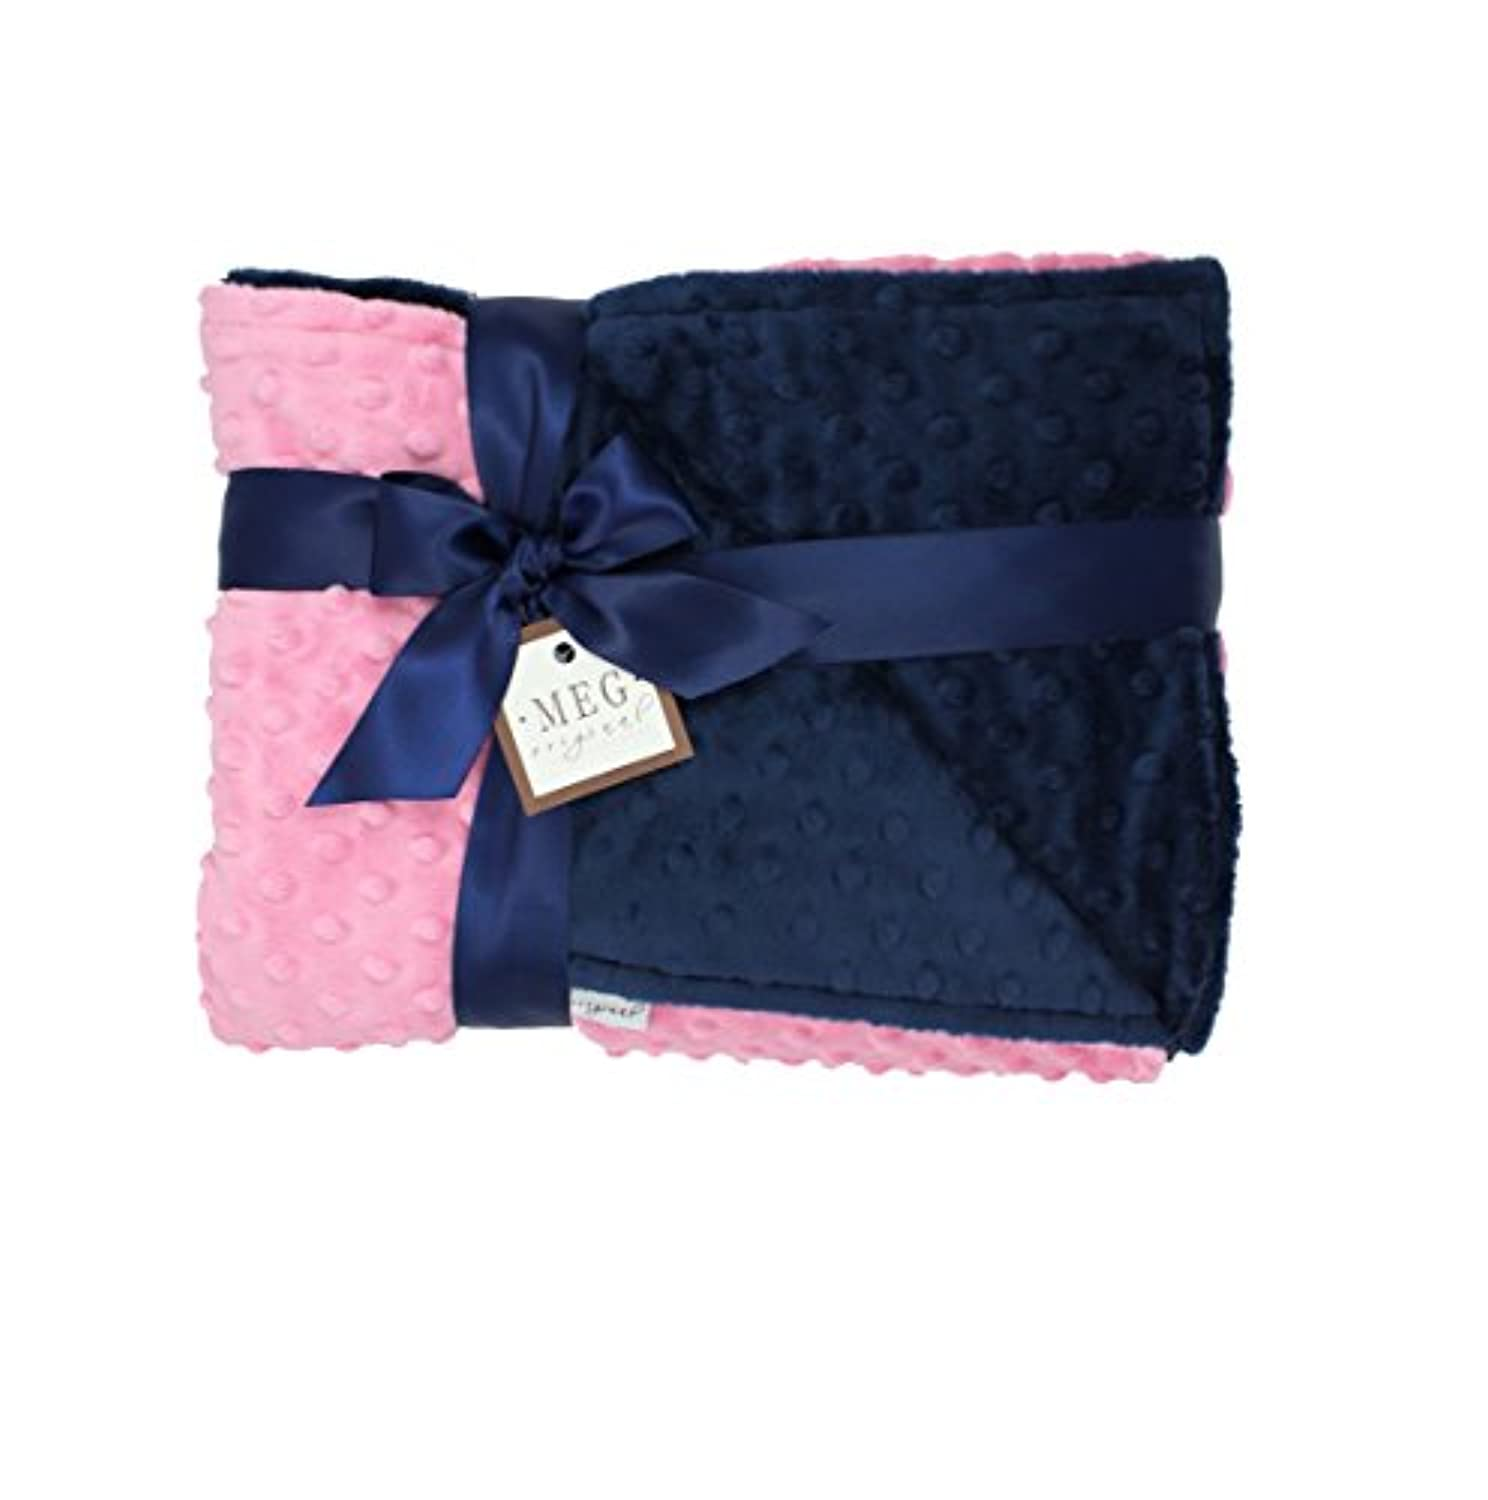 MEG Original Paris Pink and Navy Blue Minky Dot Baby Girl/Toddler Crib Blanket 667 by MEG Original